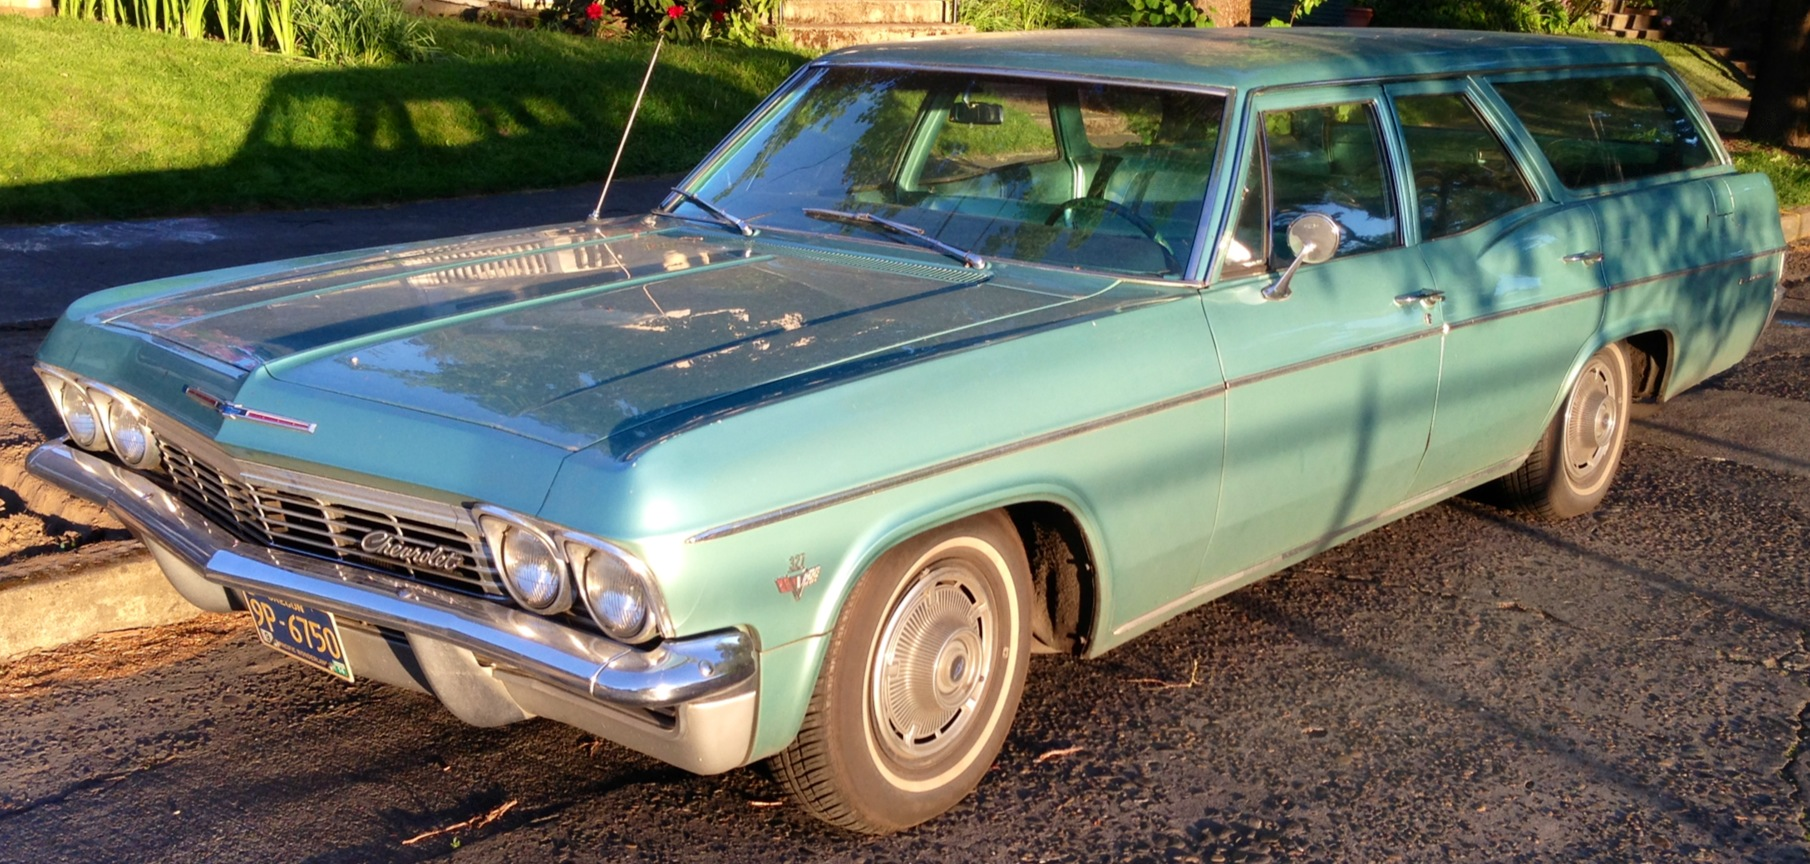 The Bridgetown Blog Our Life In Portland Page 2 1966 Chevrolet Bel Air Wagon 1965 327